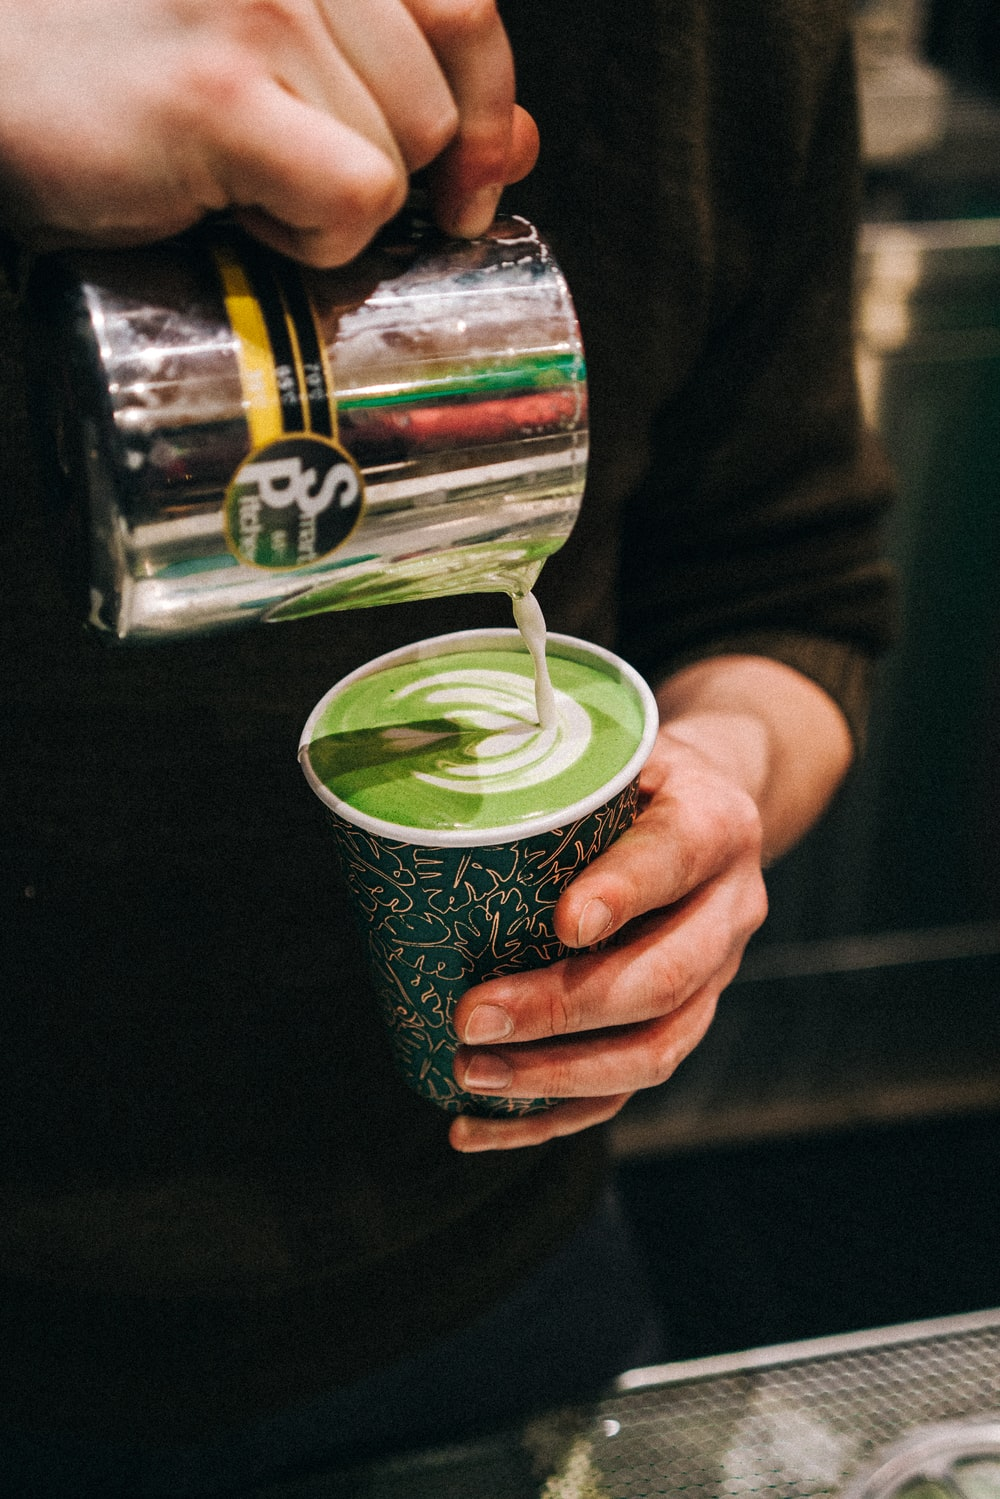 person holding green and white plastic cup and gray smart pitcher while pouring latte